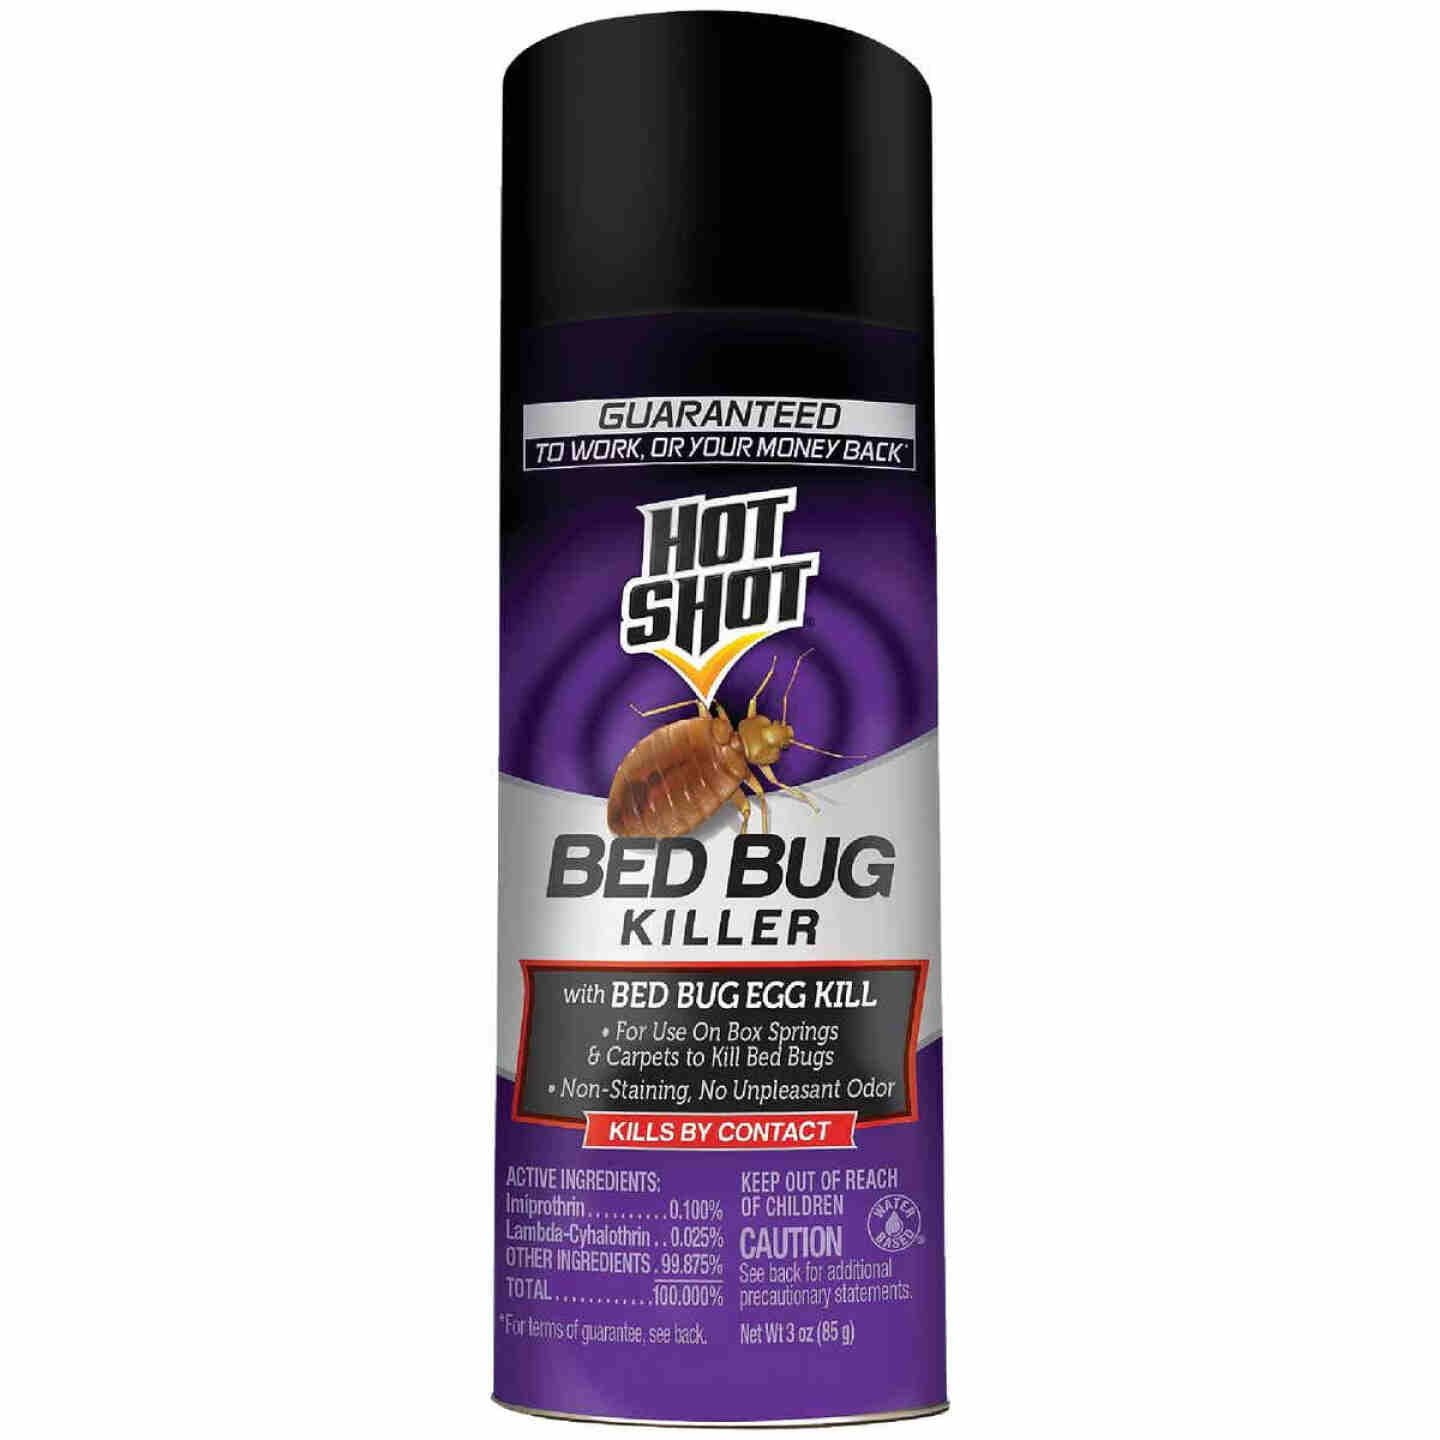 Hot Shot 3 Oz. Aerosol Spray Bedbug Killer Image 1